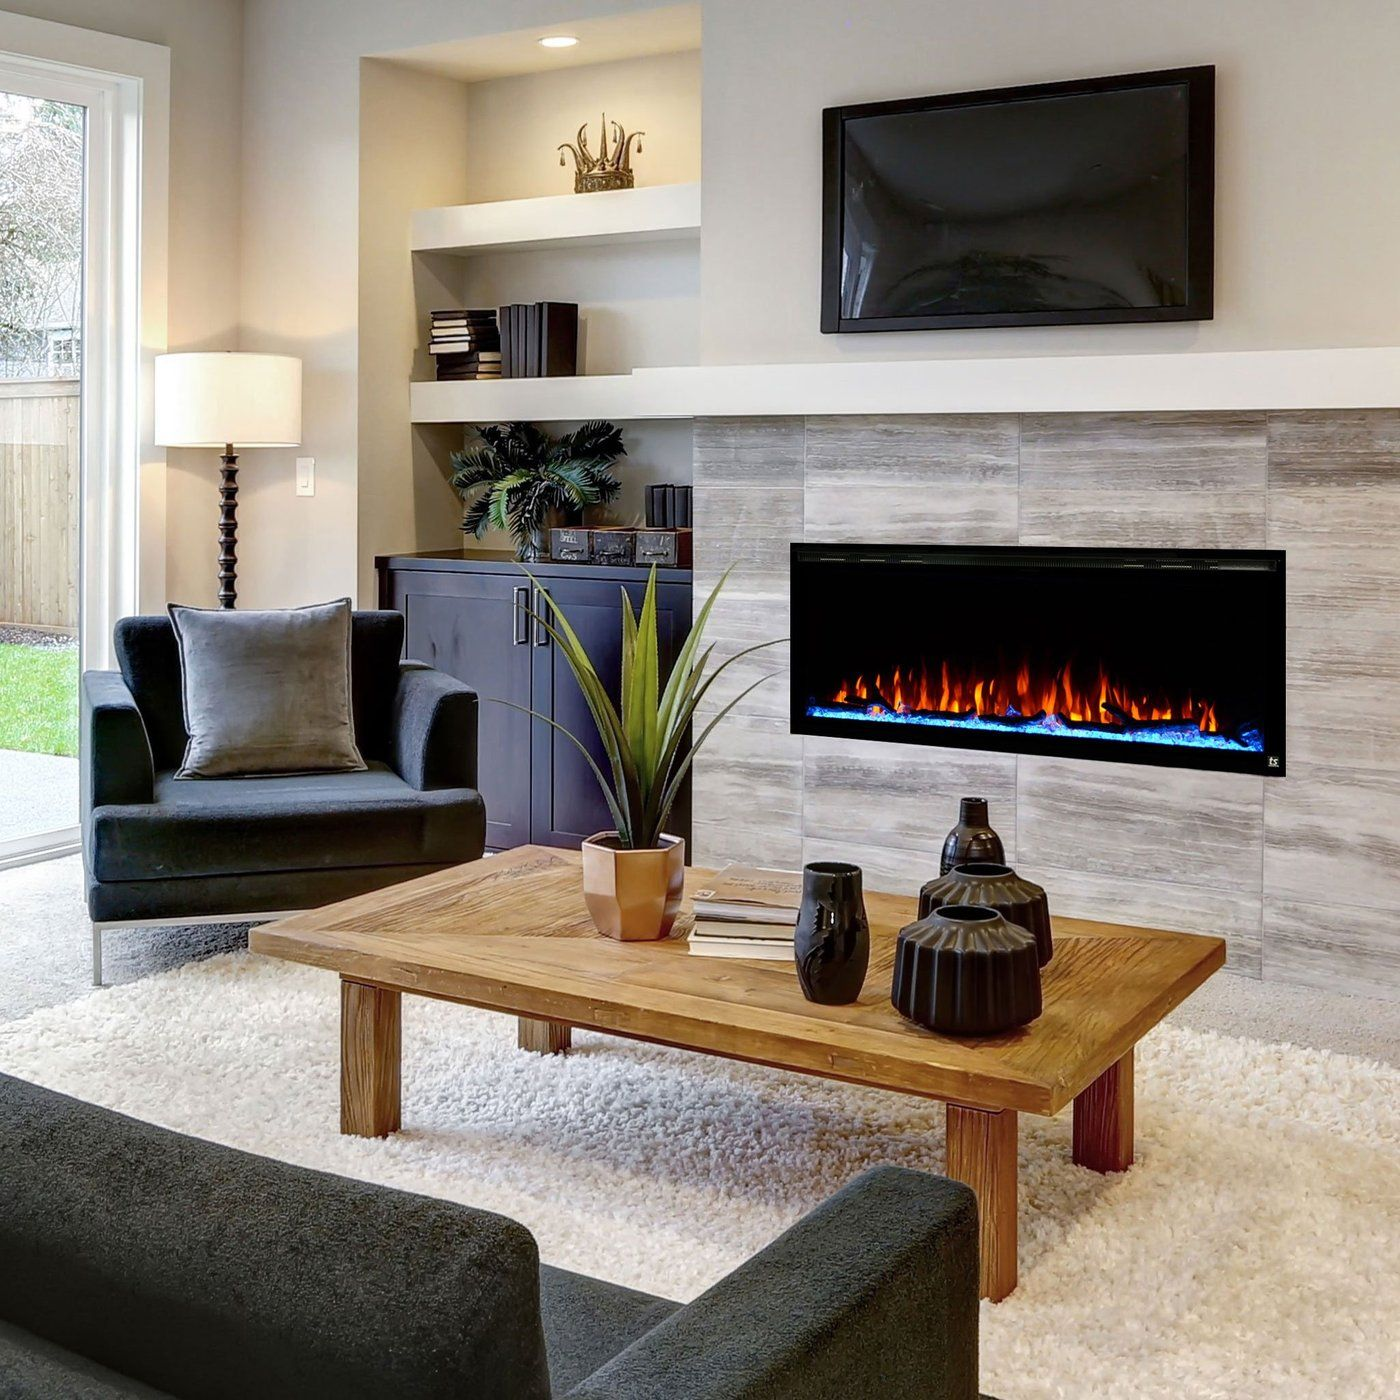 Sideline Elite 50 Recessed Electric Fireplace Touchstone Home